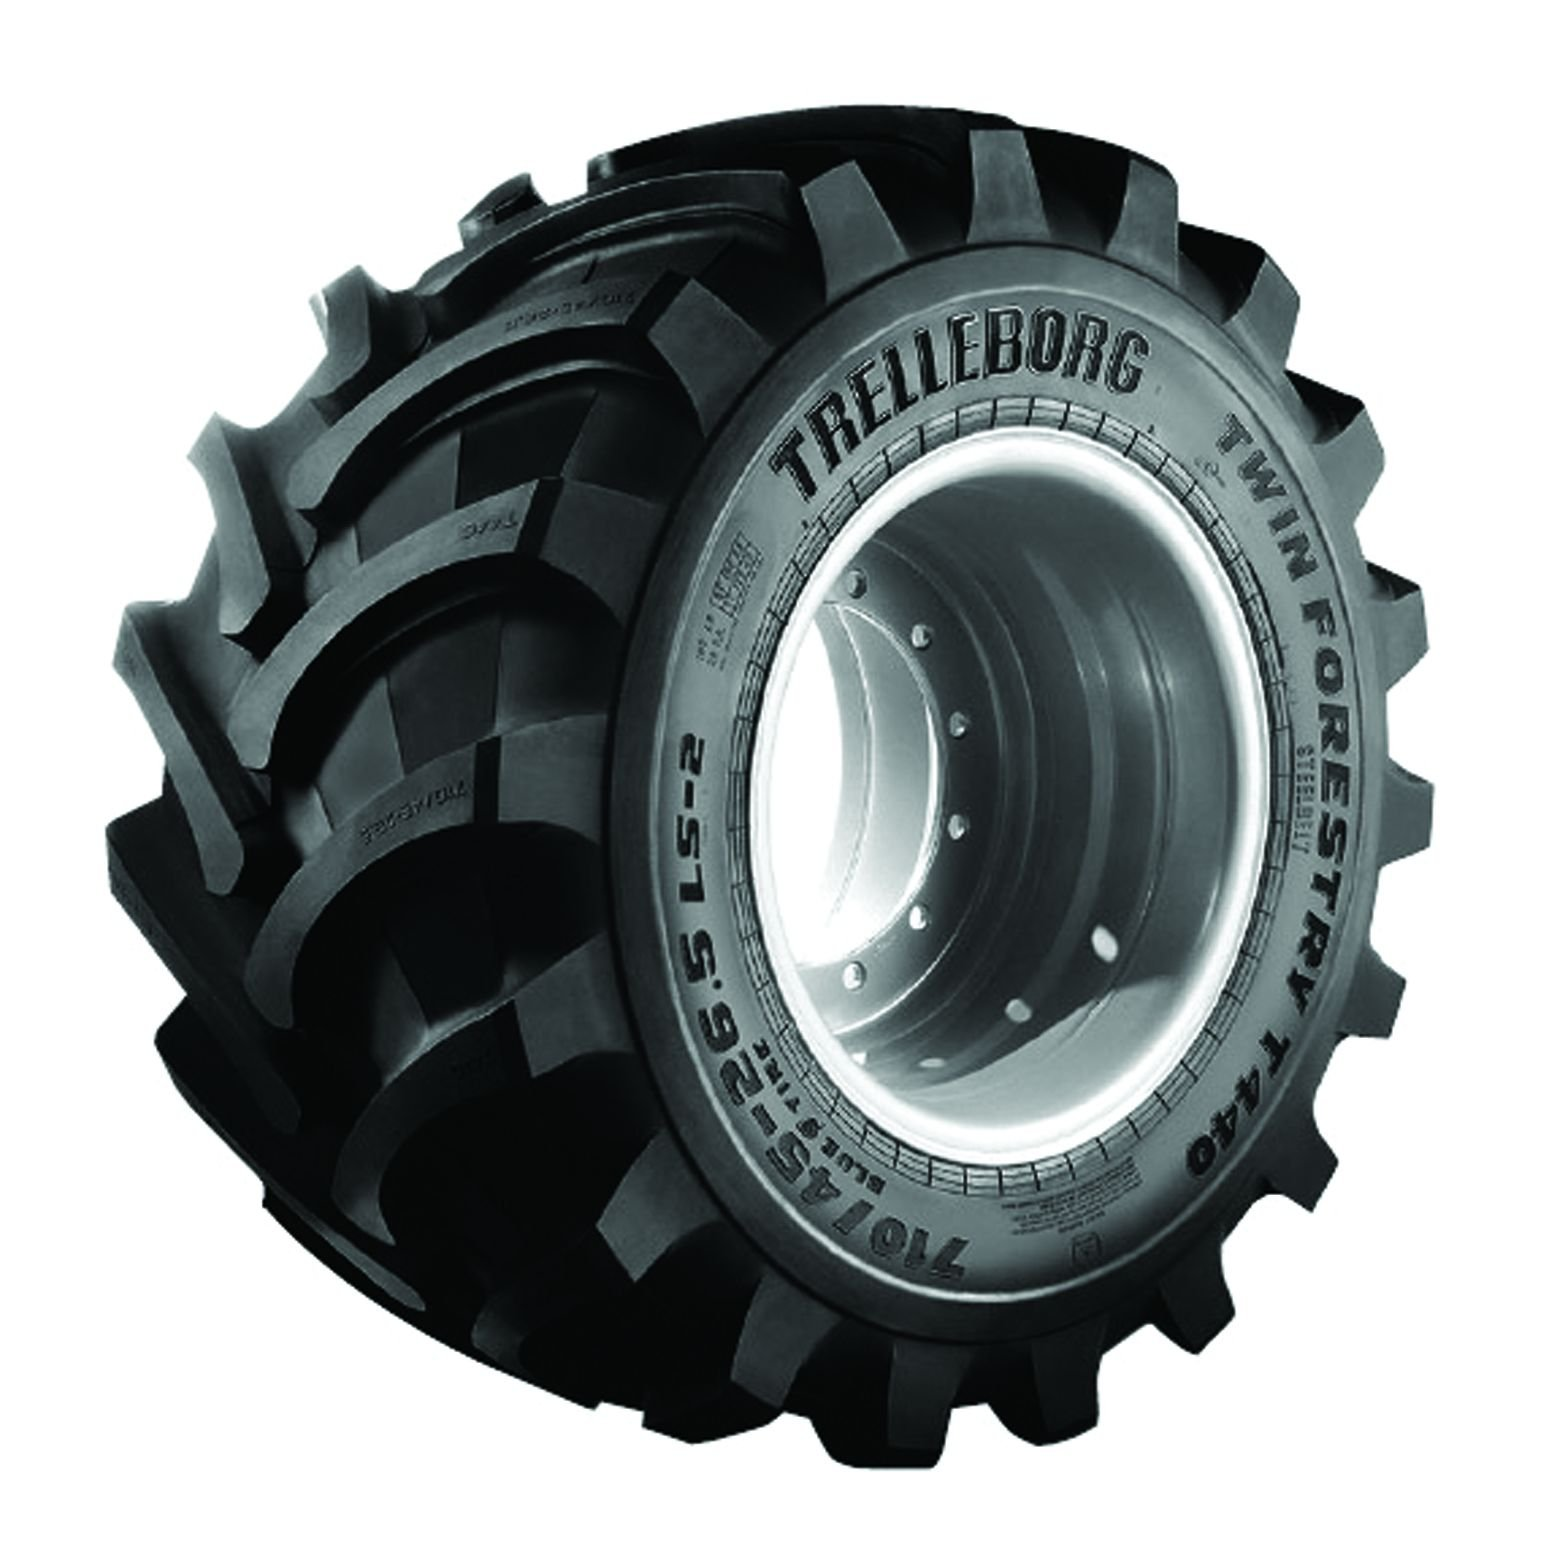 Improvements in Trelleborg Forestry Tires